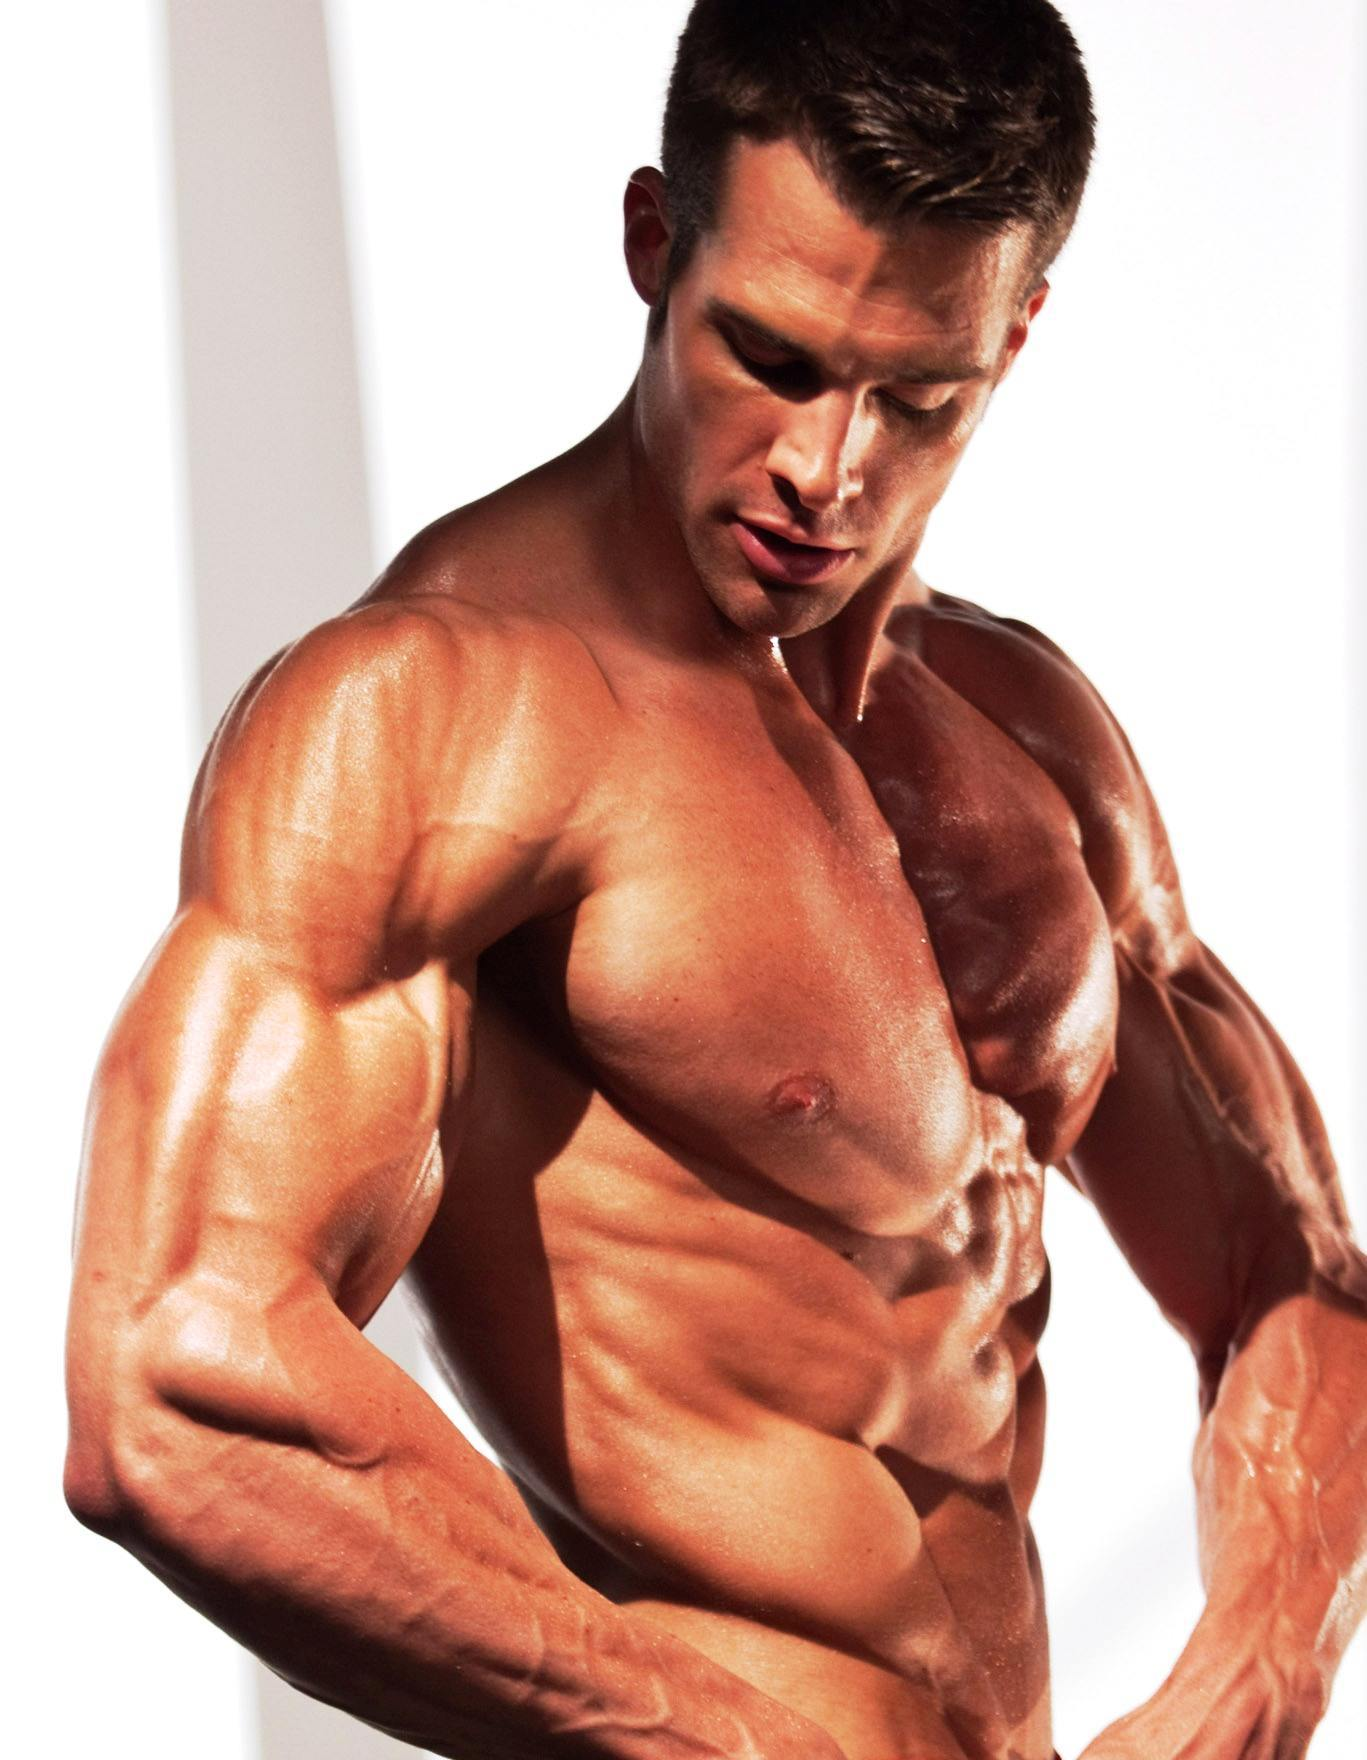 Male Fitness Model Workout